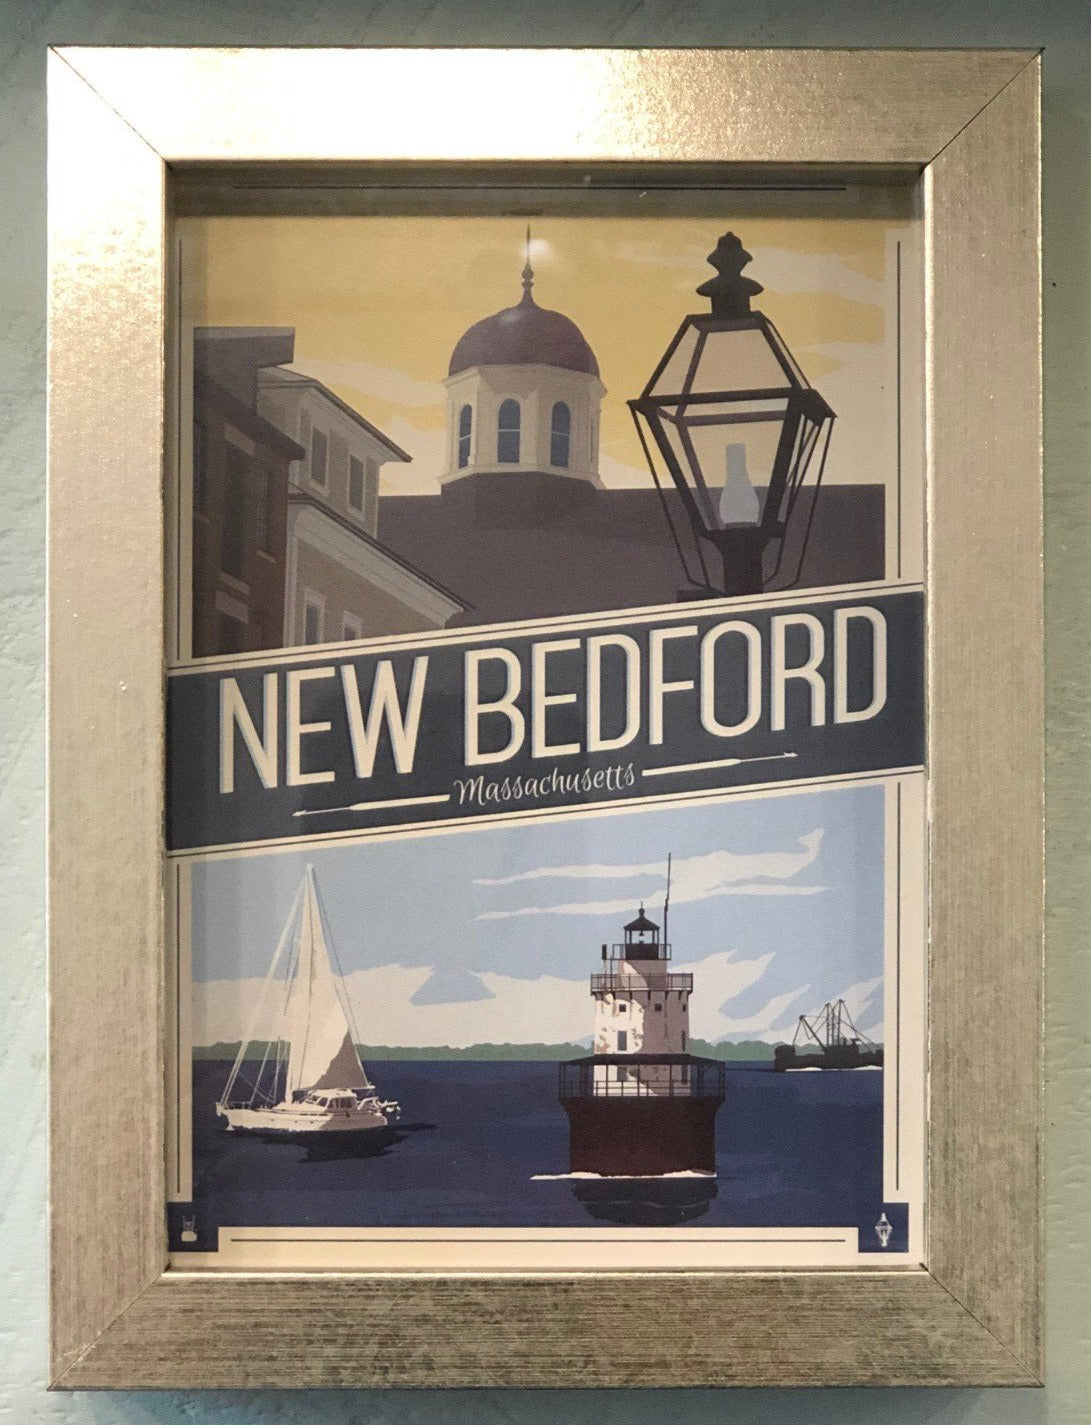 New Bedford Post Card, Montage